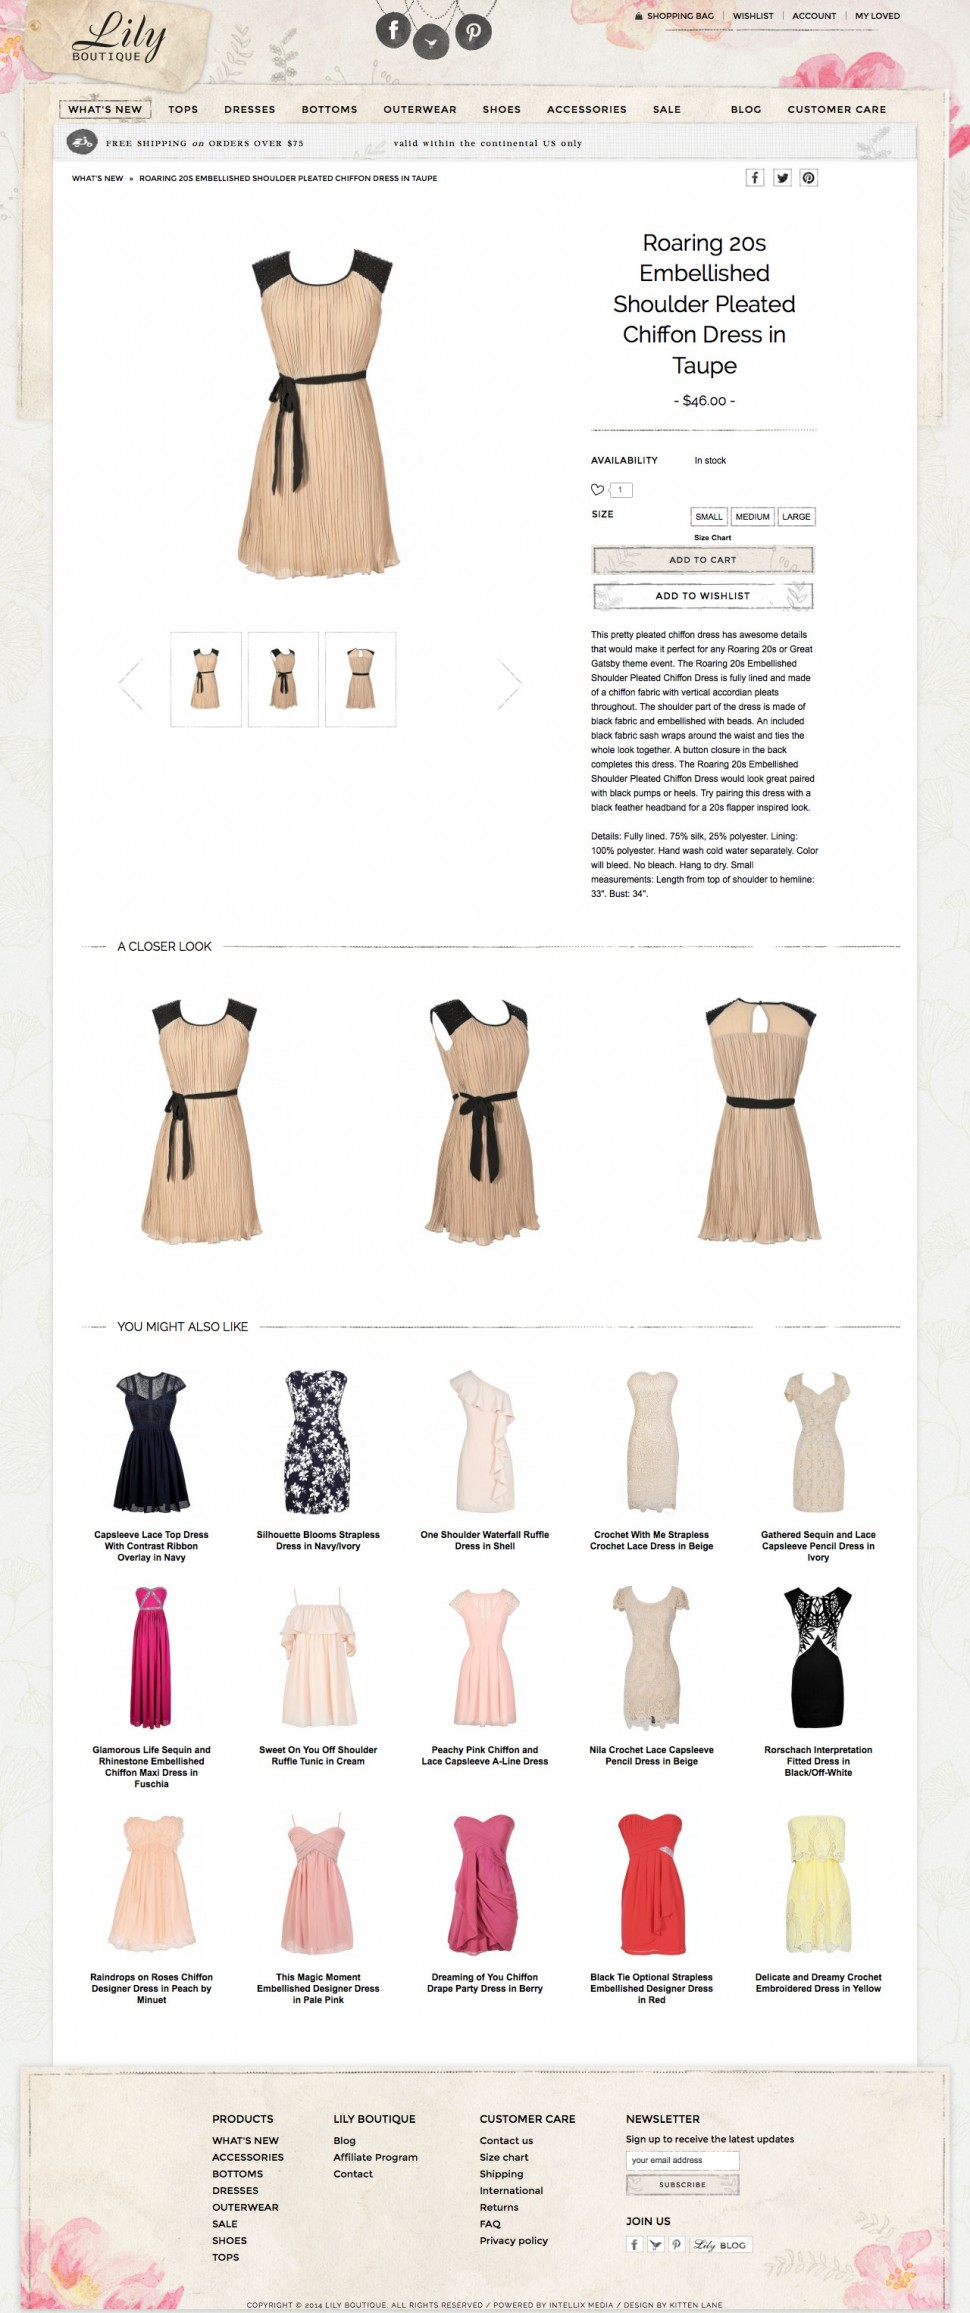 lily boutique - product page